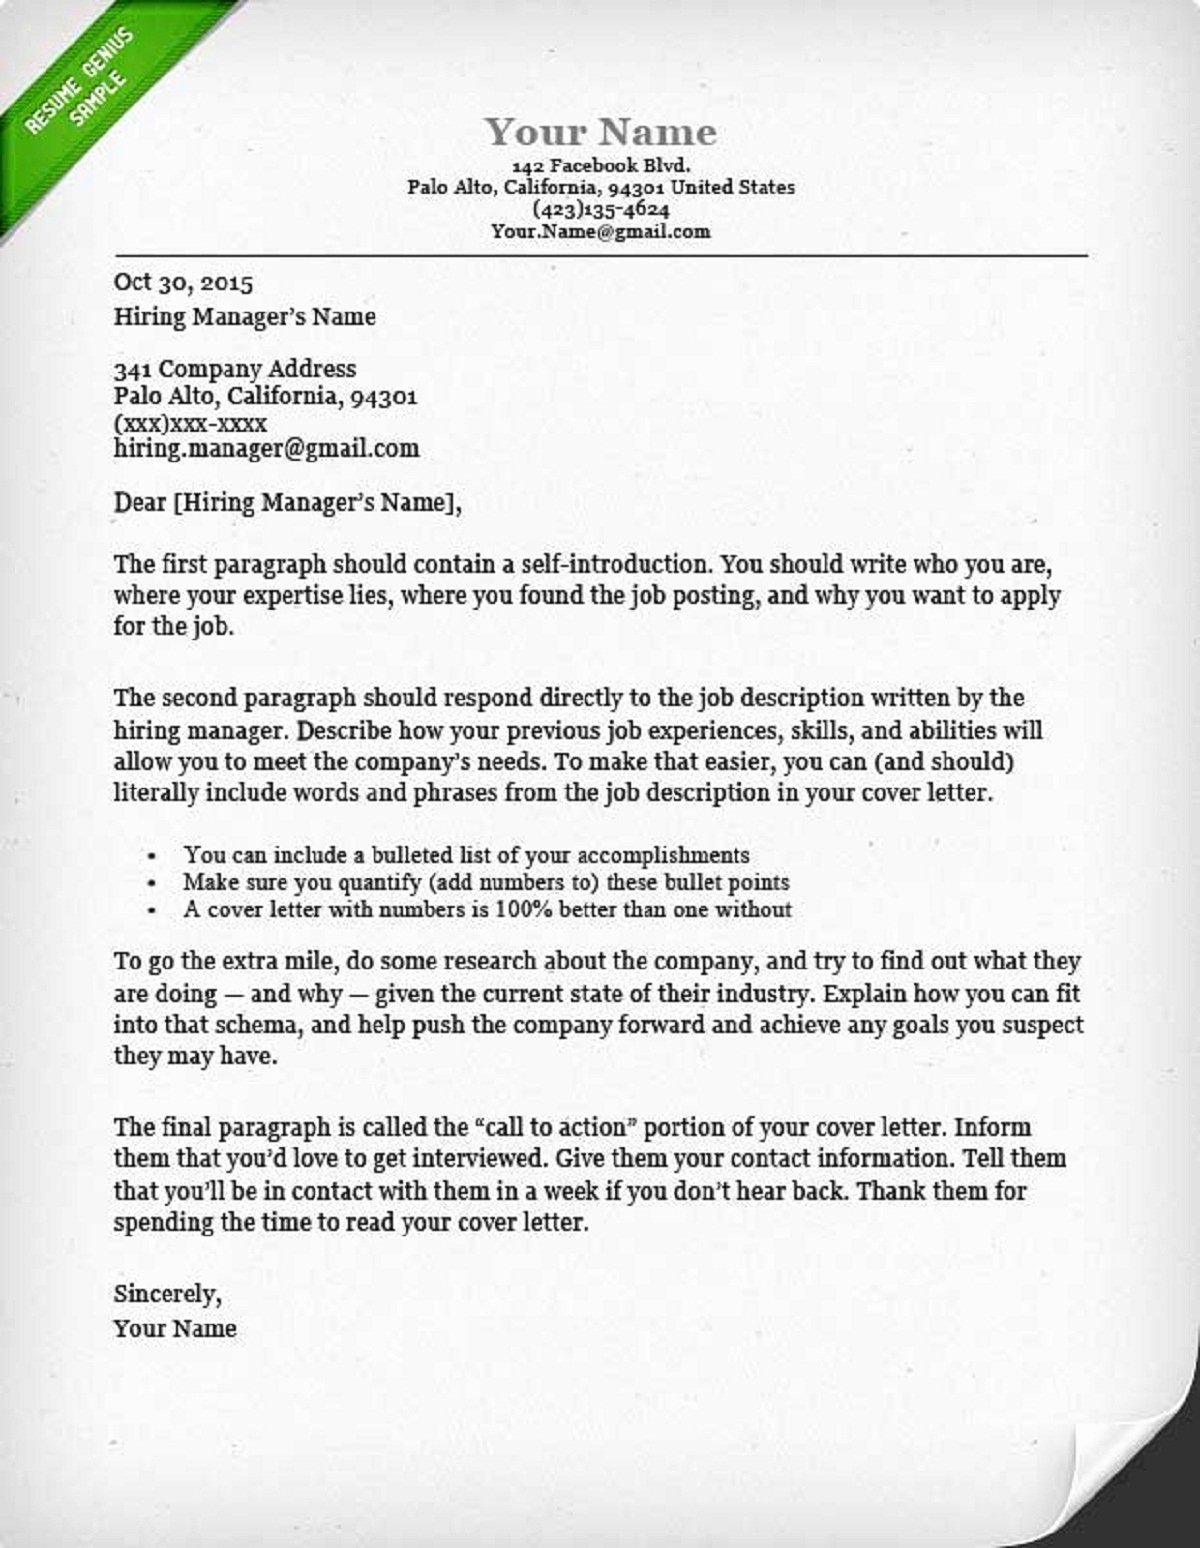 How to Write A Cover Letter Guide with Sample